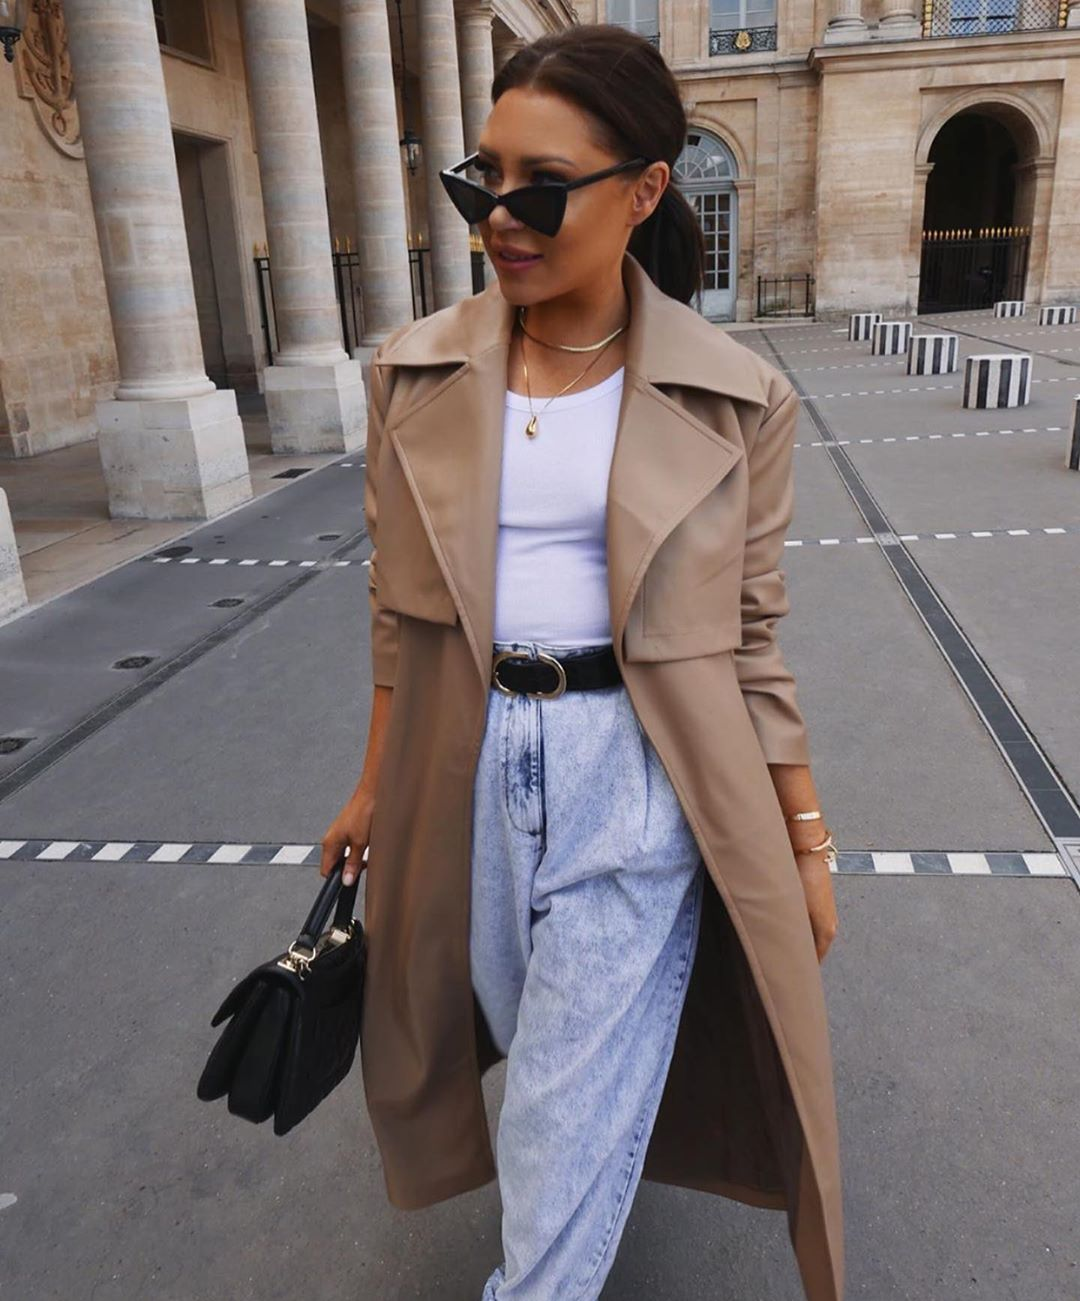 30 The Best Street Style Fashion Ideas Of The Year images 2